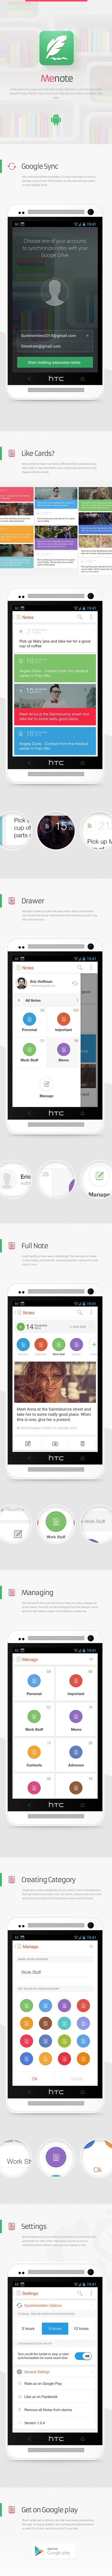 Menote - Awesome notes for your Android by Dmitriy Haraberush, via Behance #mobile #ui #design  www.alexsung.me